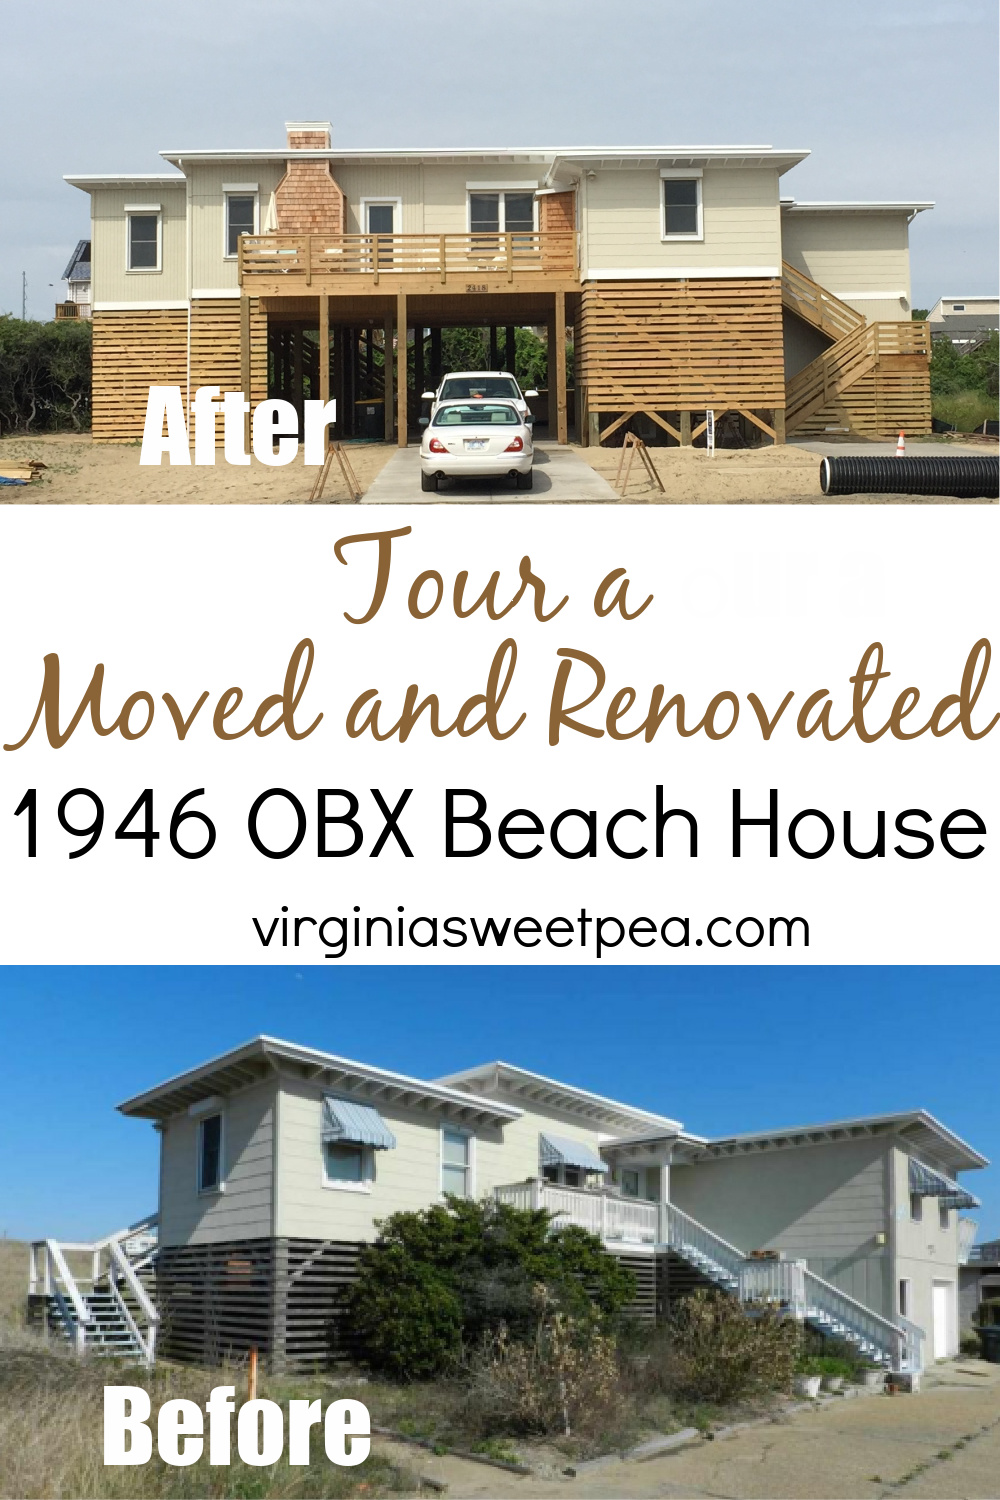 Tour a Moved and Renovated 1946 OBX Beach House - An Outer Banks home was saved from developers by moving it to a new lot.  The home was renovated and now is updated but still retained its vintage charm.  #outerbanks #obxhome  via @spaula